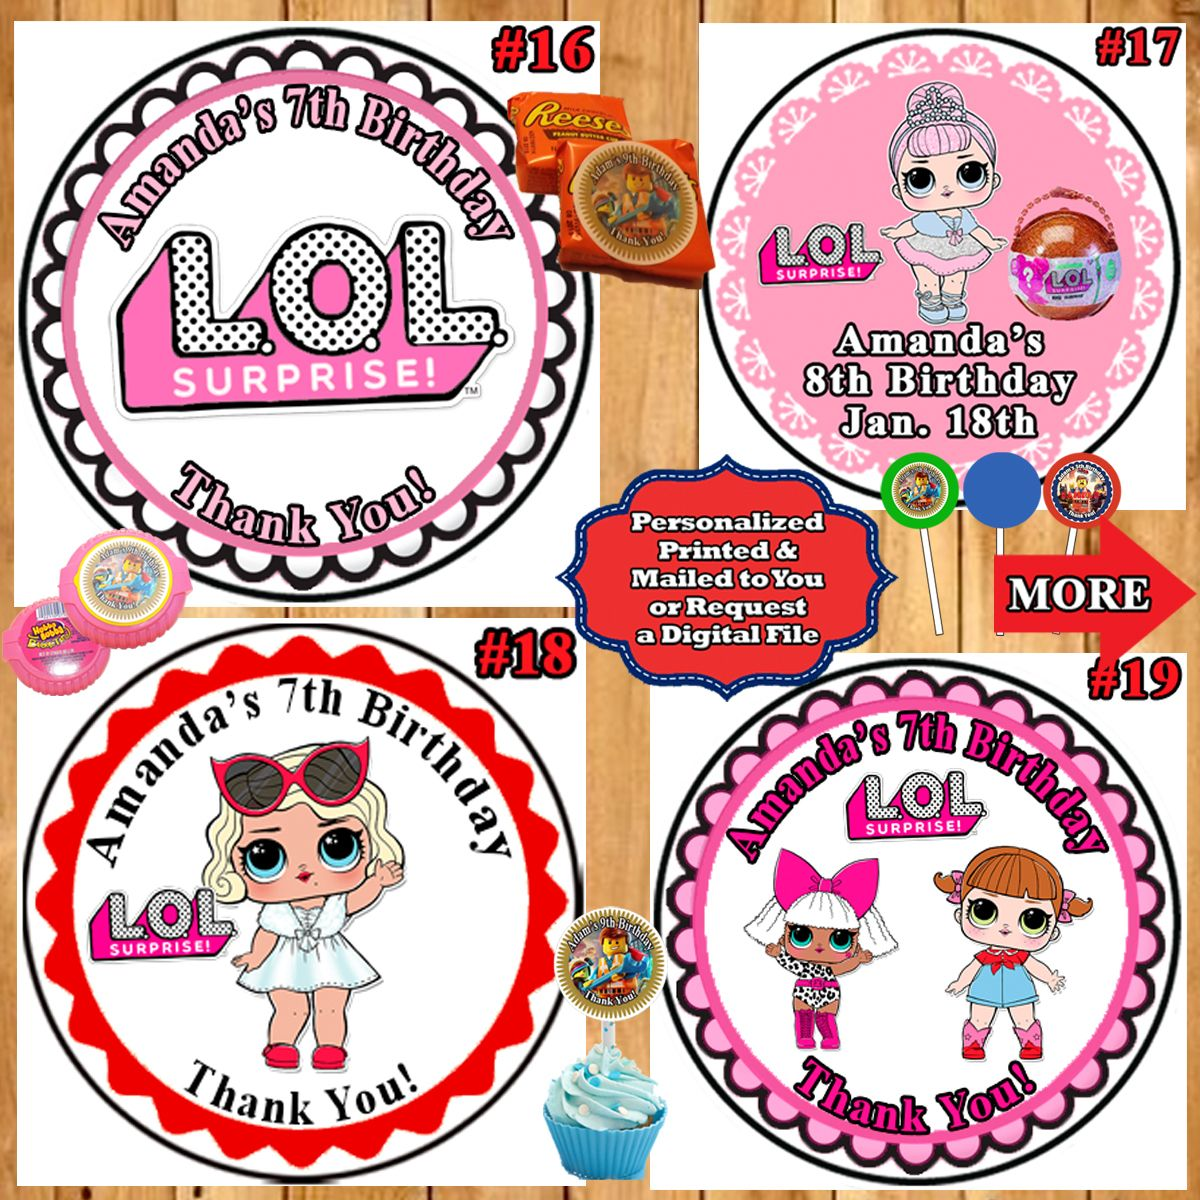 Lol surprise birthday stickers labels round 1 sheet personalized customized